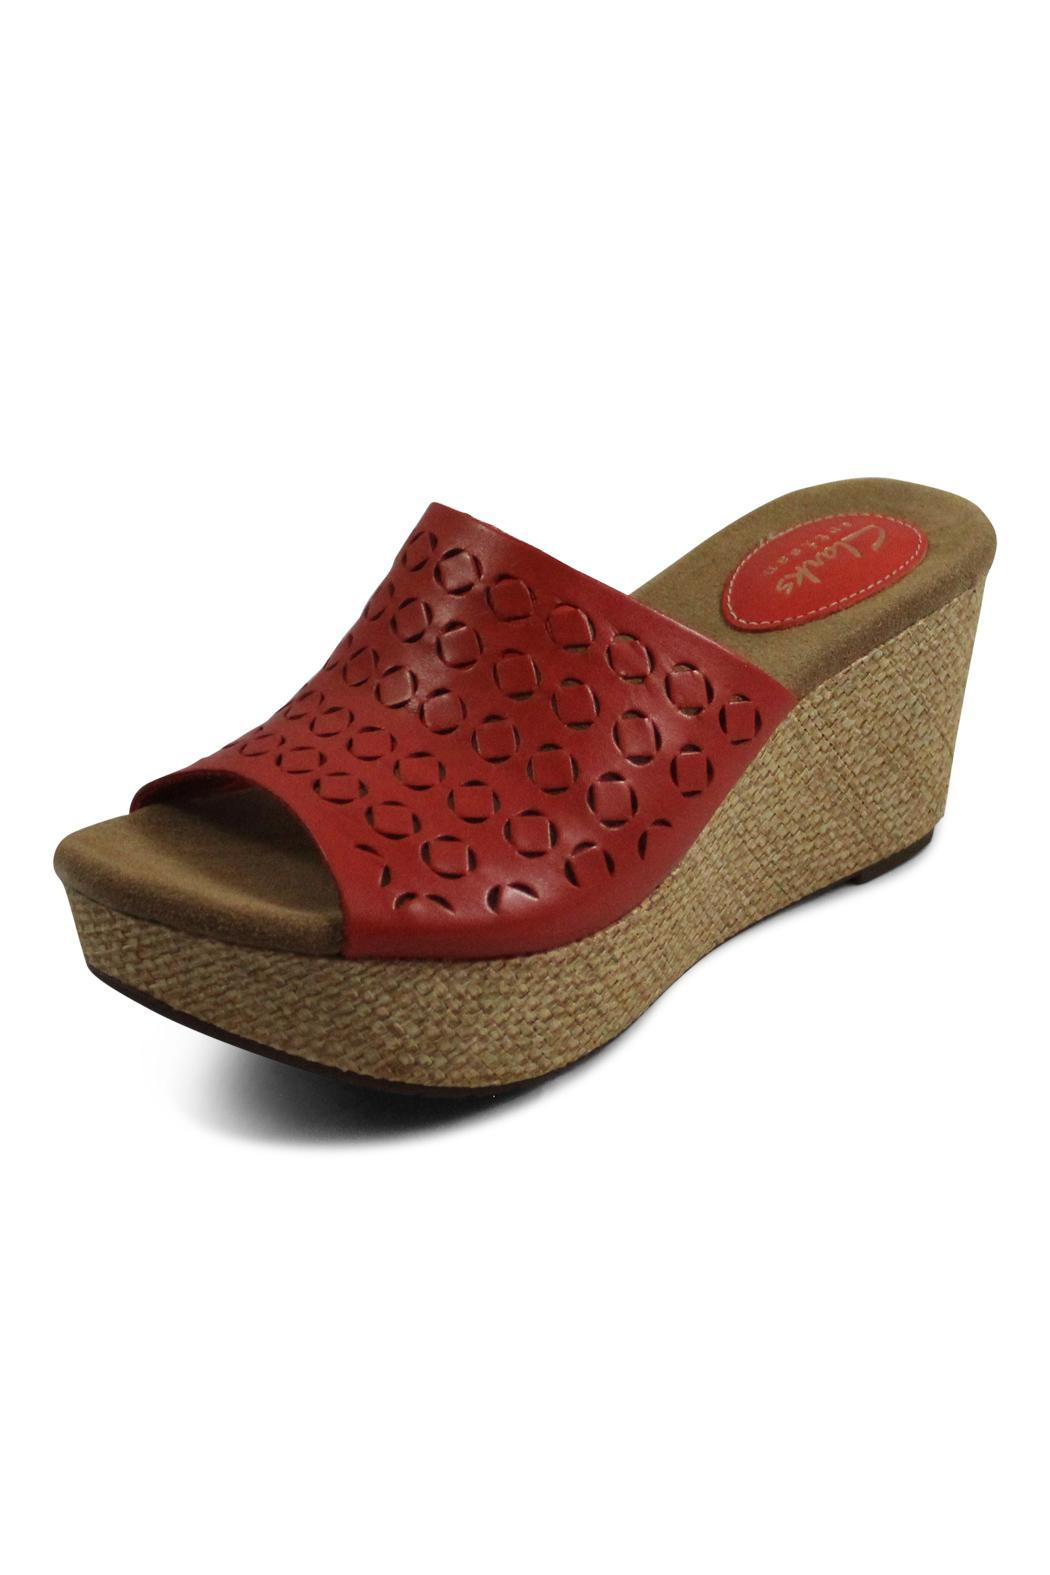 Clarks Red Wedge Sandal - Front Full Image